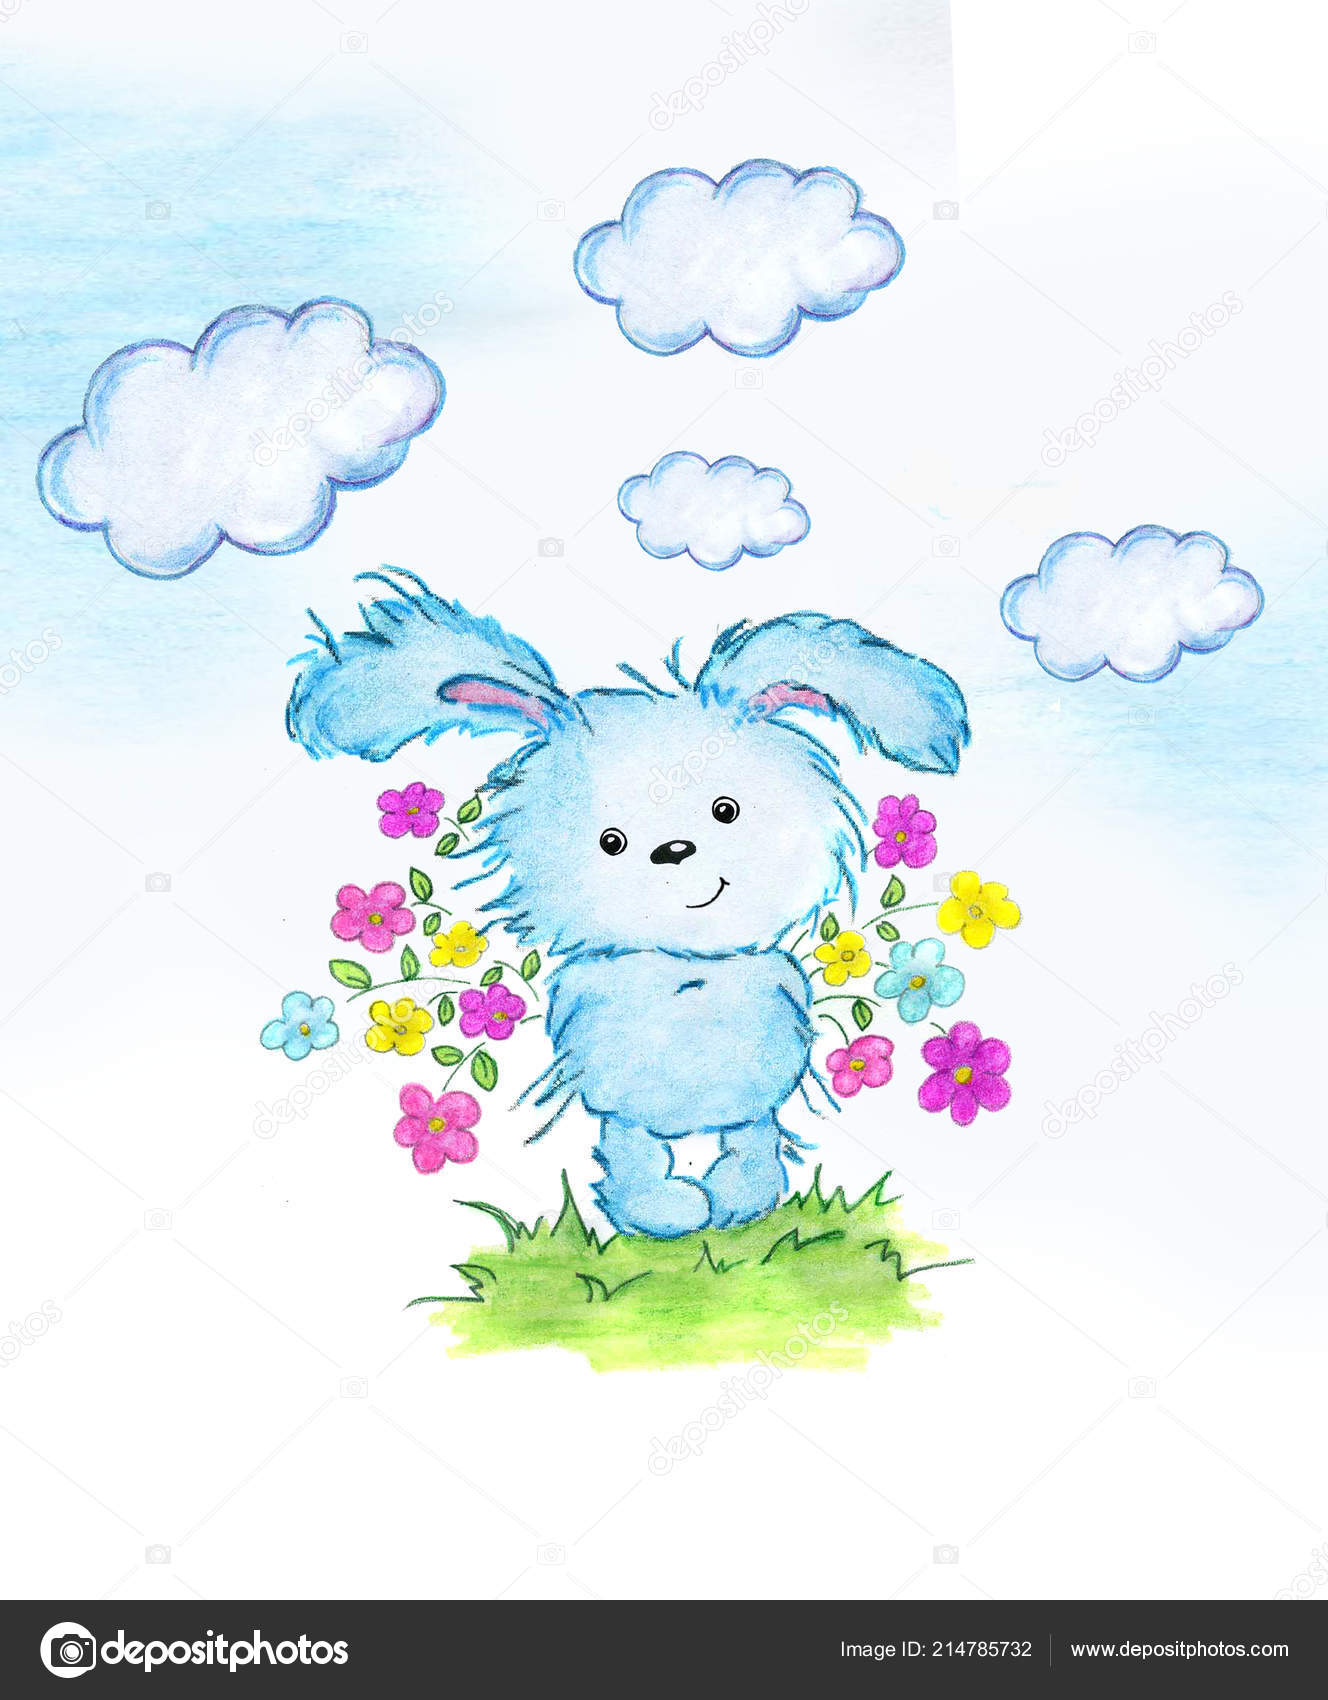 Cute Rabbit Flowers Perfect Kids Print Birthday Cards Design Books Stock Image